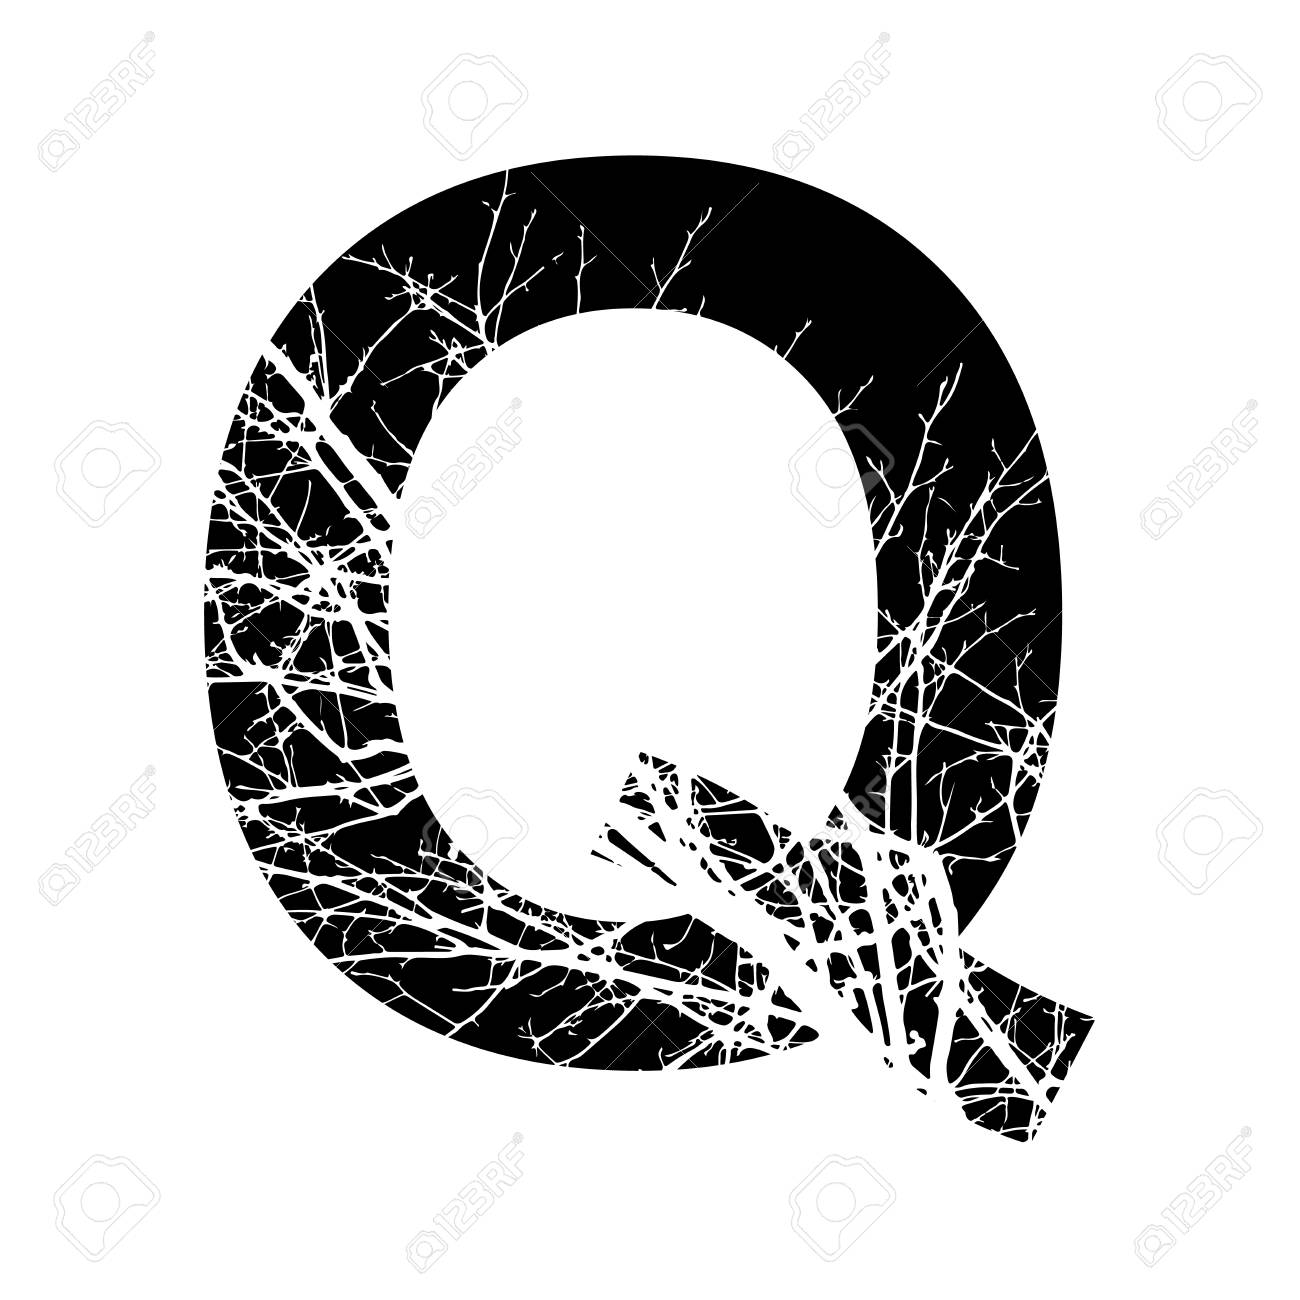 Letter Q Double Exposure With White Tree On Black Background Vector